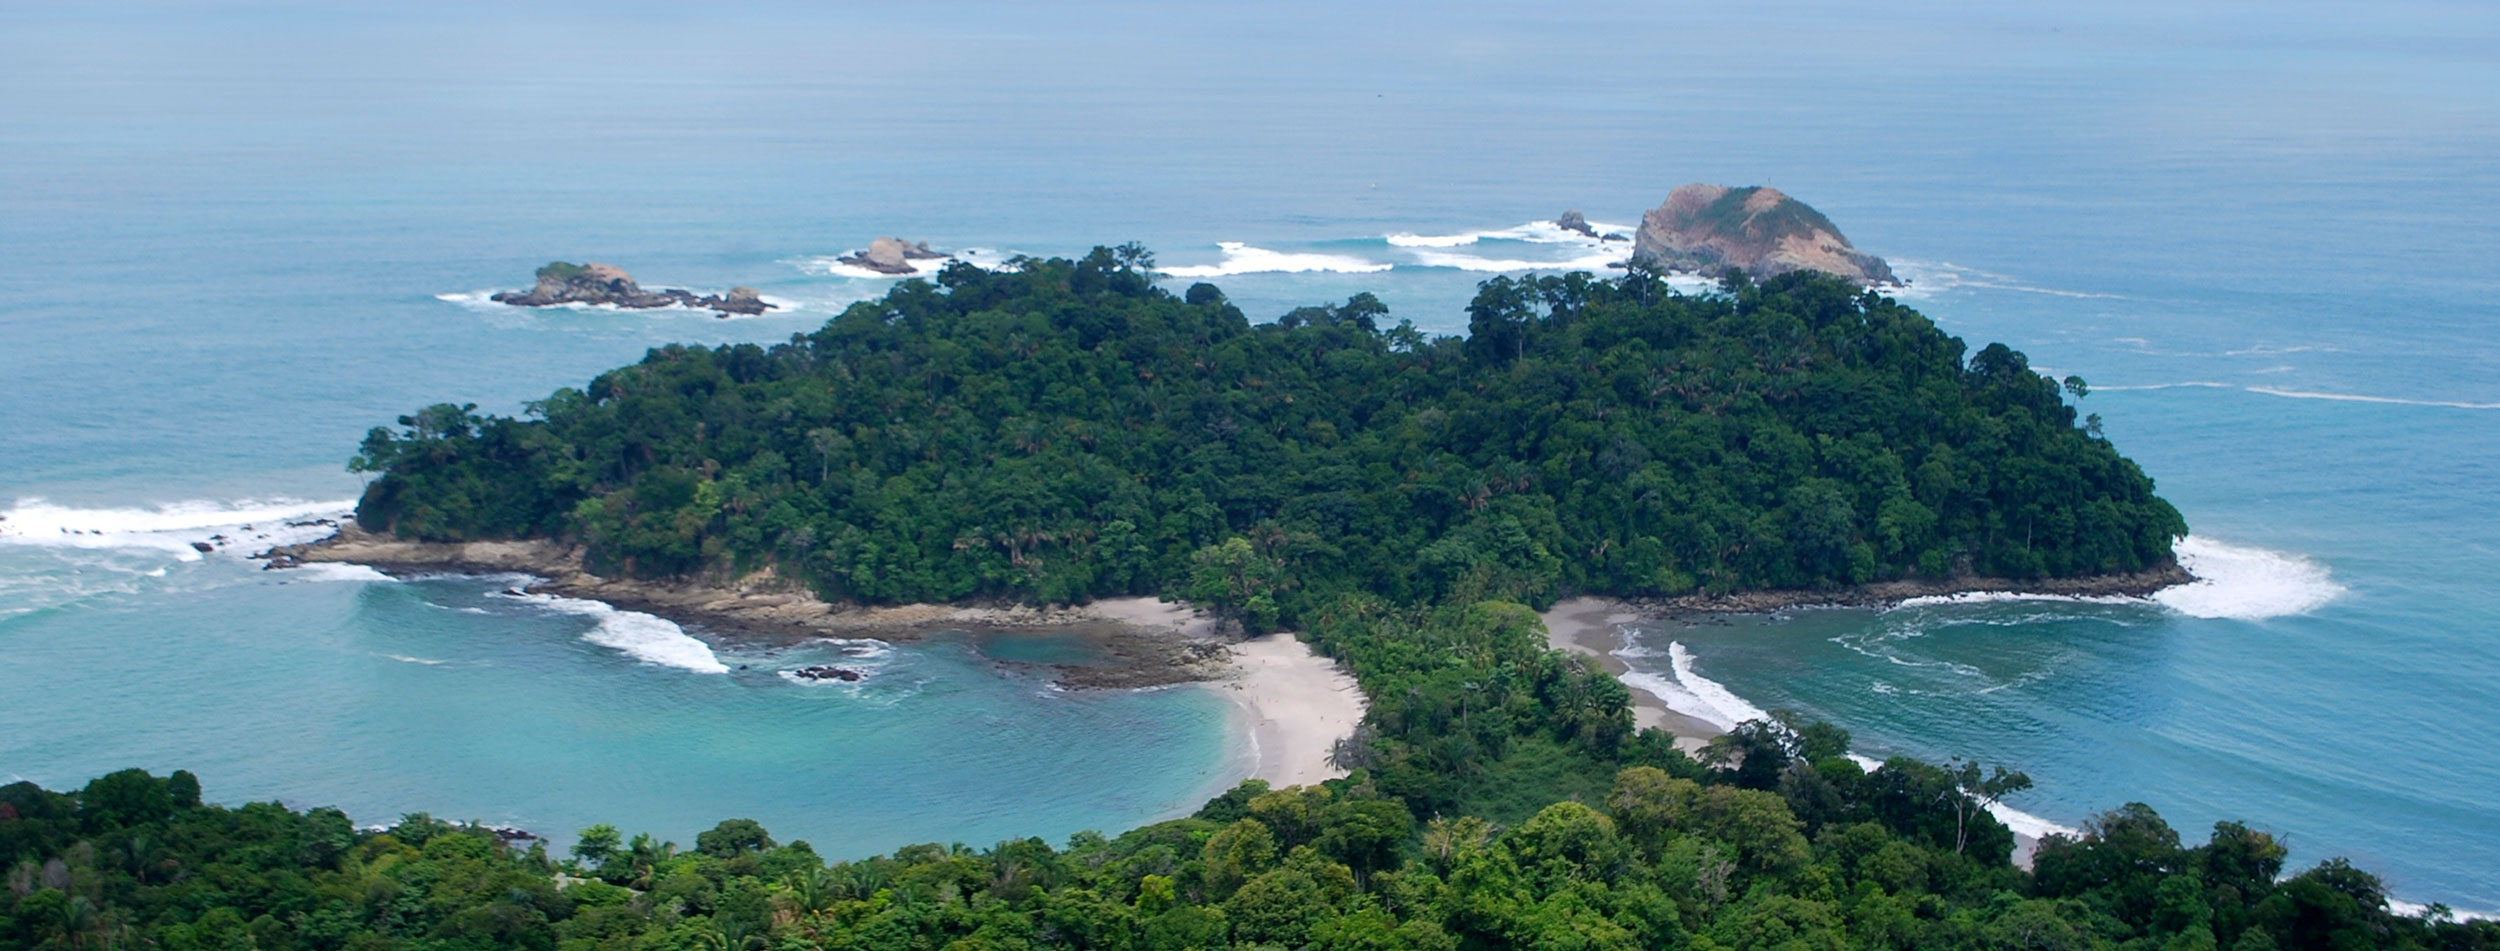 Guided Hike to Manuel Antonio National Park